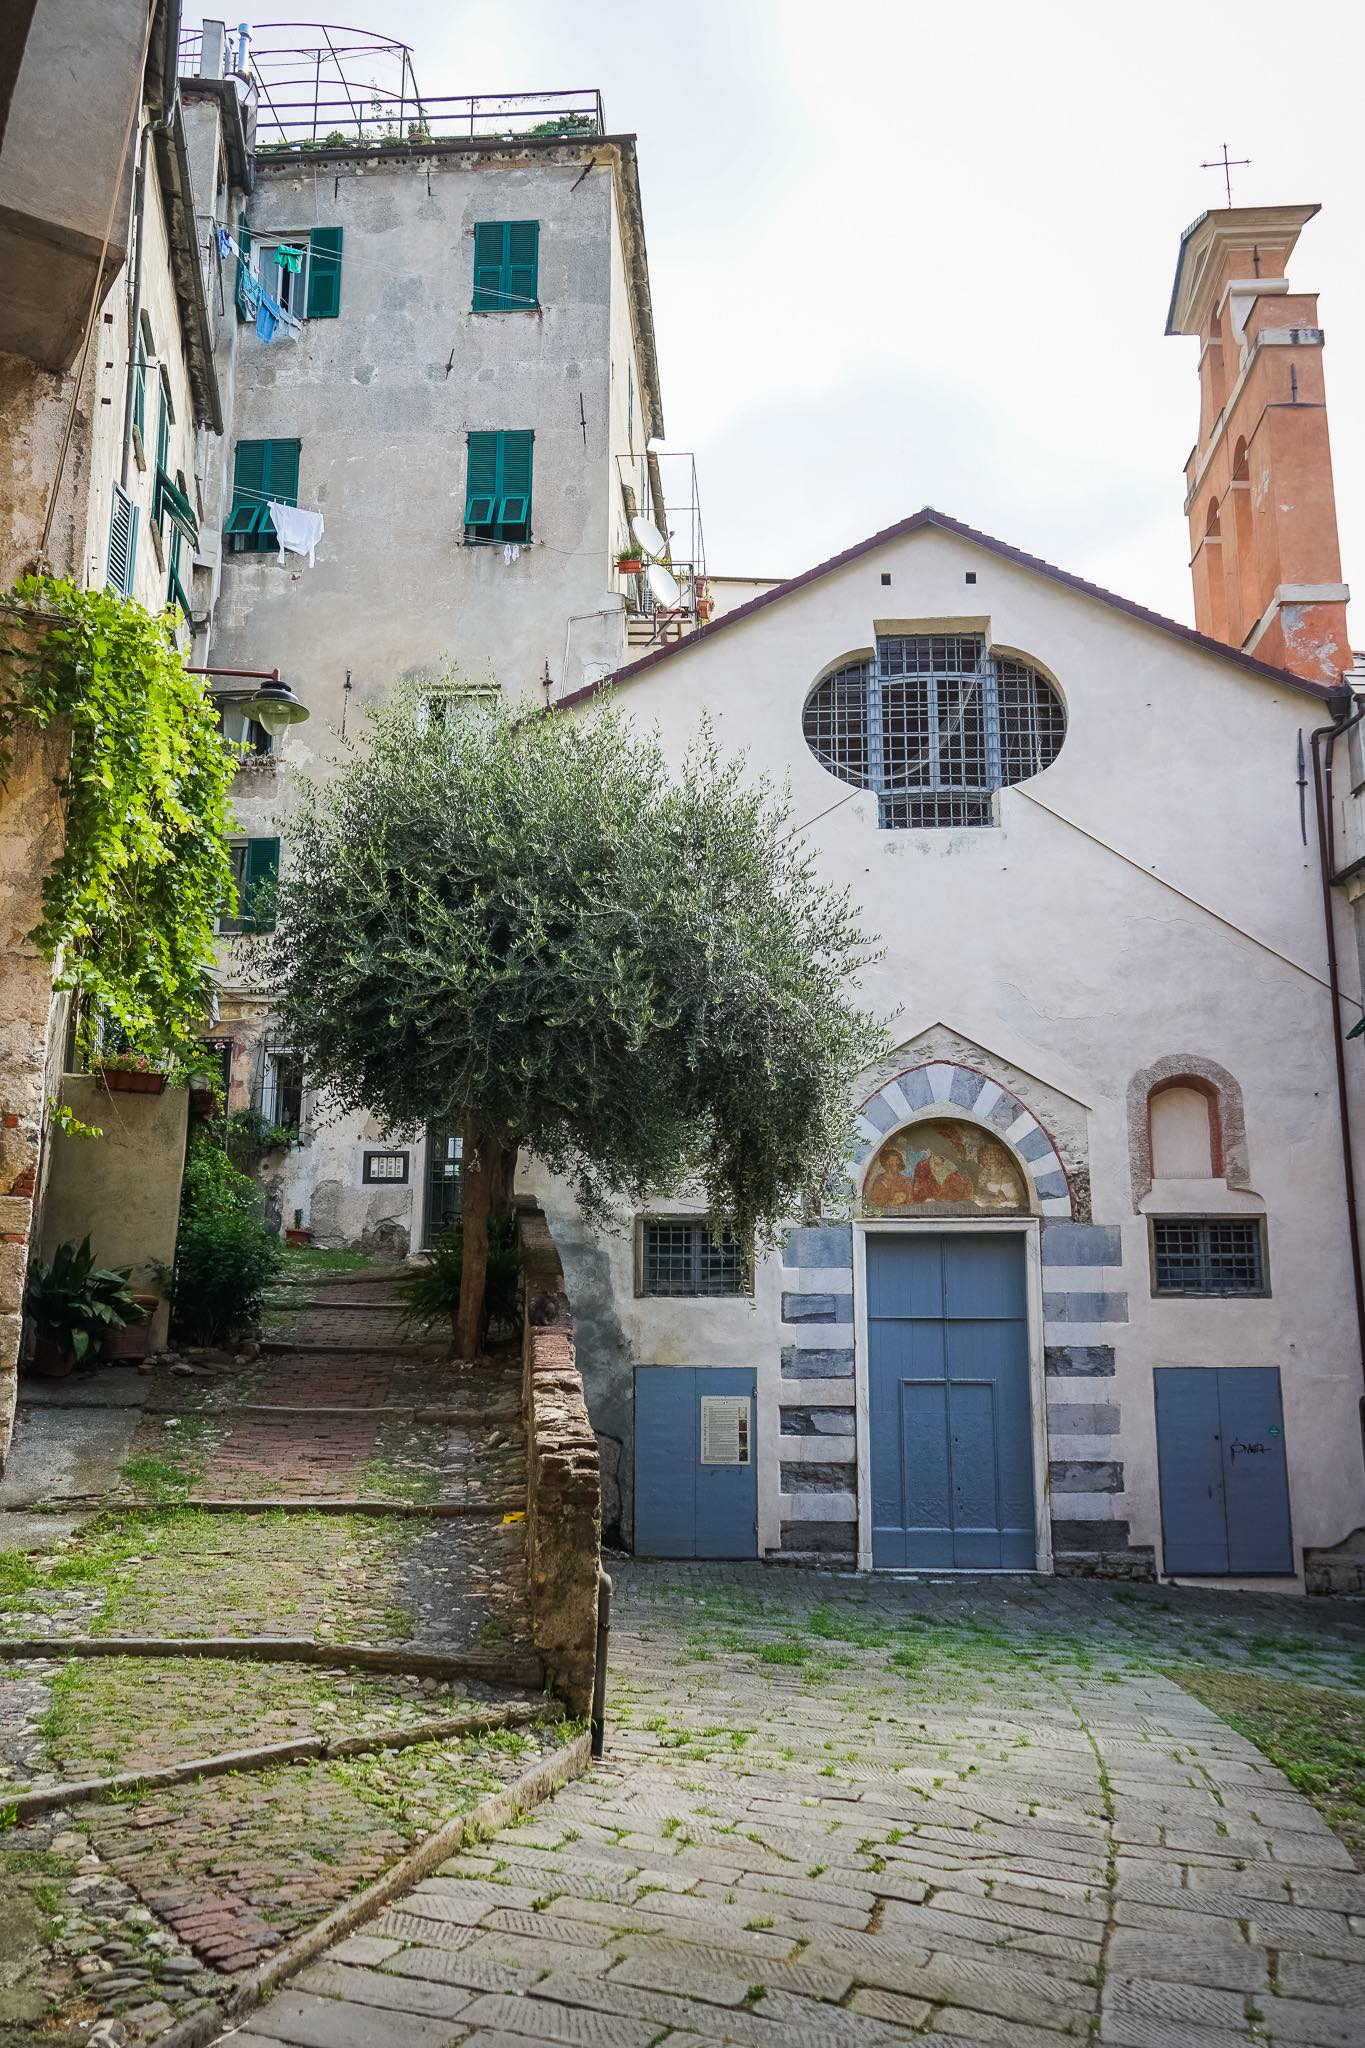 The ancient church of piazza San Bartolomeo dell'Olivella, an atmospheric corner in the Carmine neighbourhood in Genoa